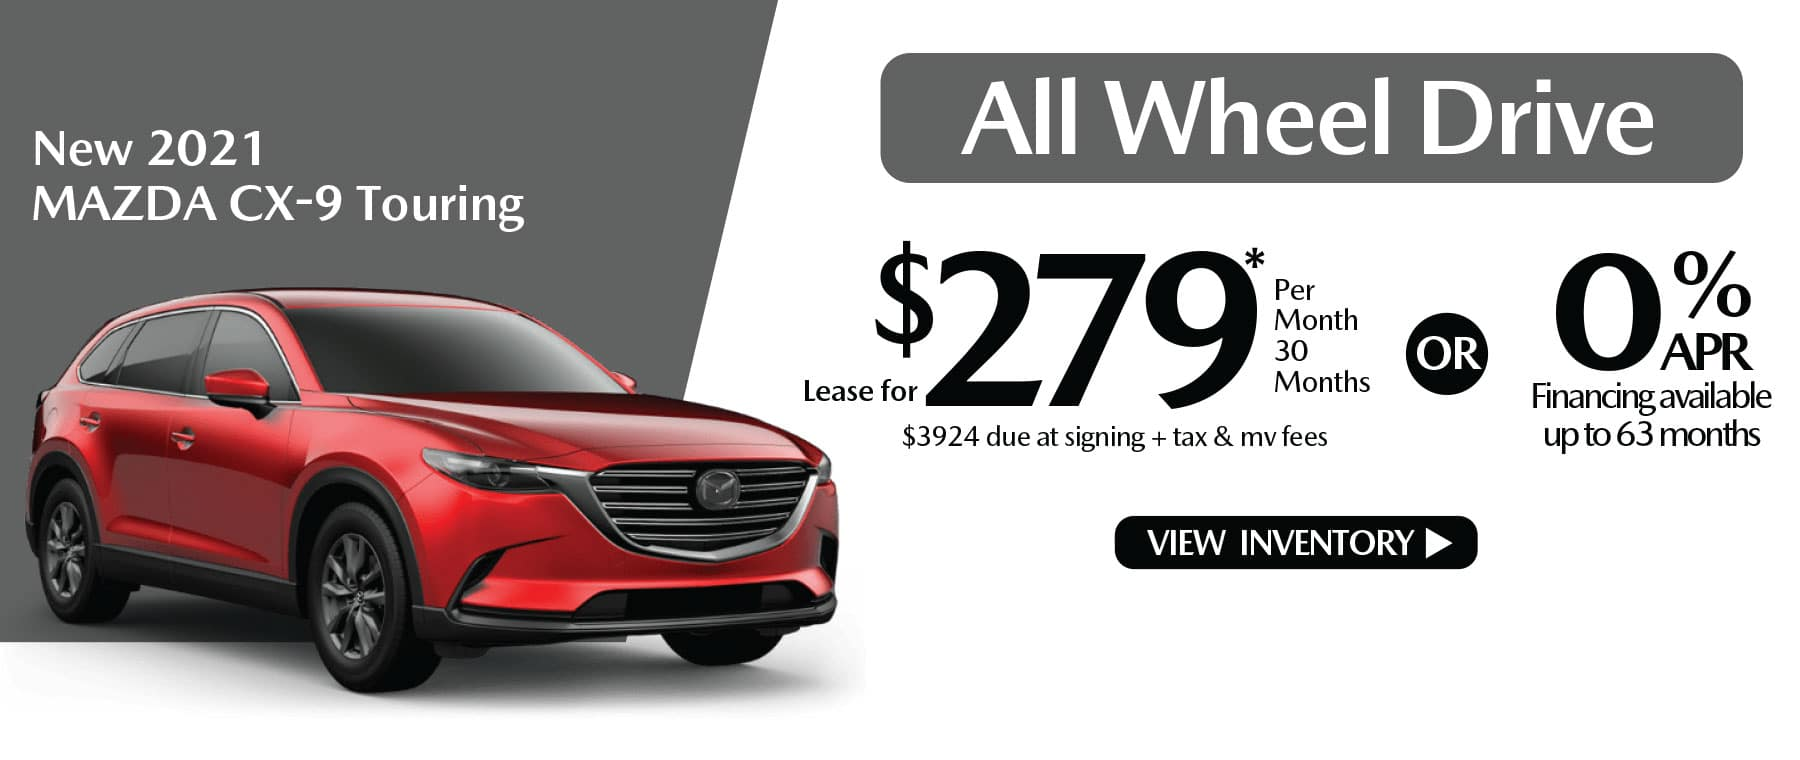 02u CX-9 hi New Lease Special Offer Mazda of New Rochelle NY